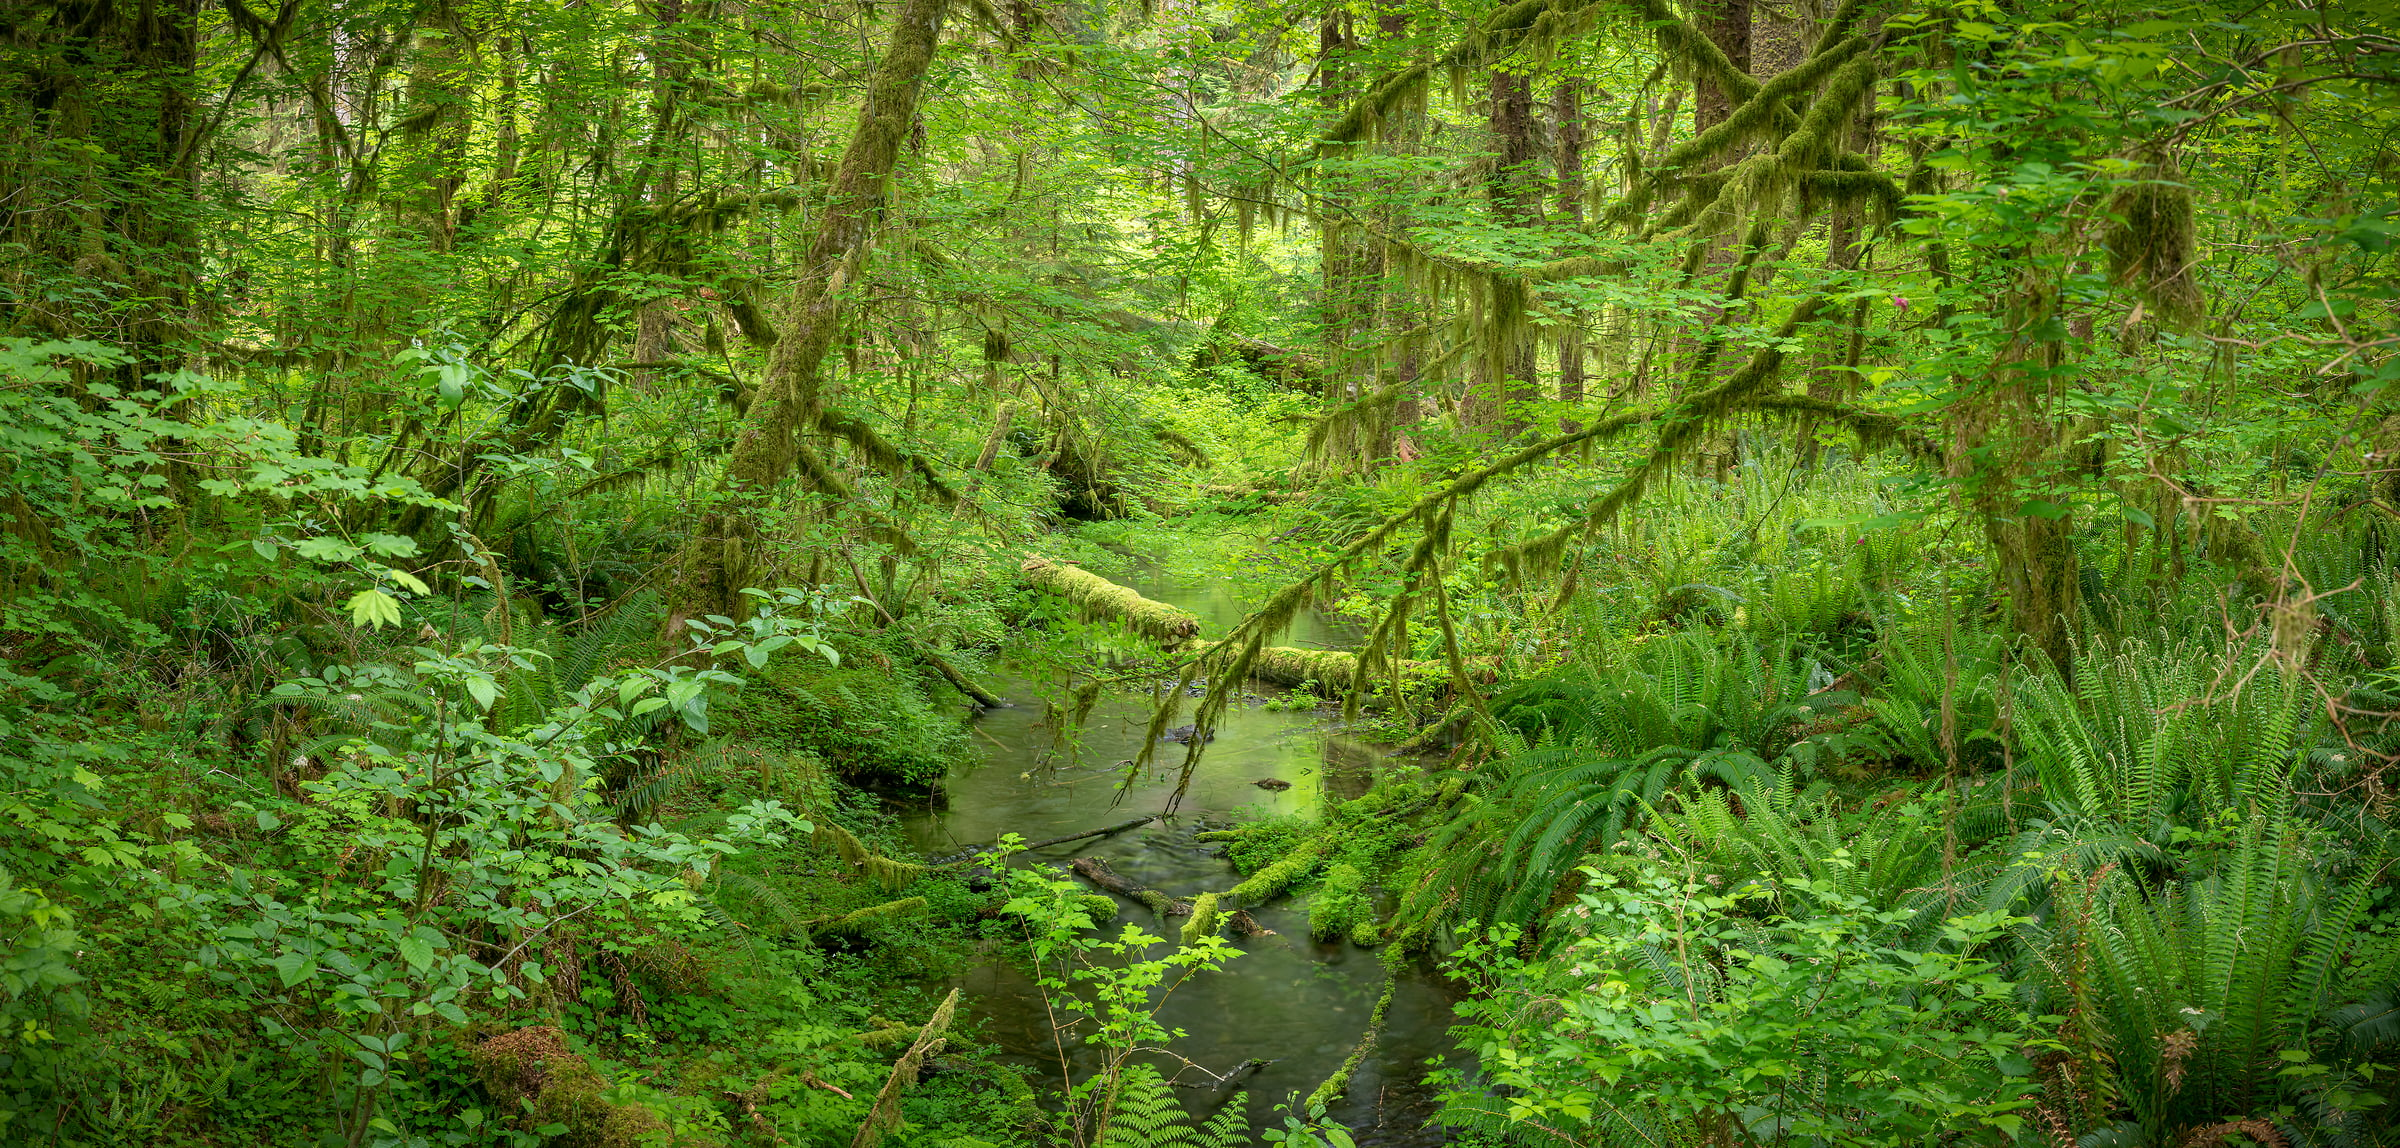 200 megapixels! A very high resolution, large-format VAST photo print of a lush, green rainforest; nature photograph created by Greg Probst in Hoh Rainforest, Olympic National Park, Washington